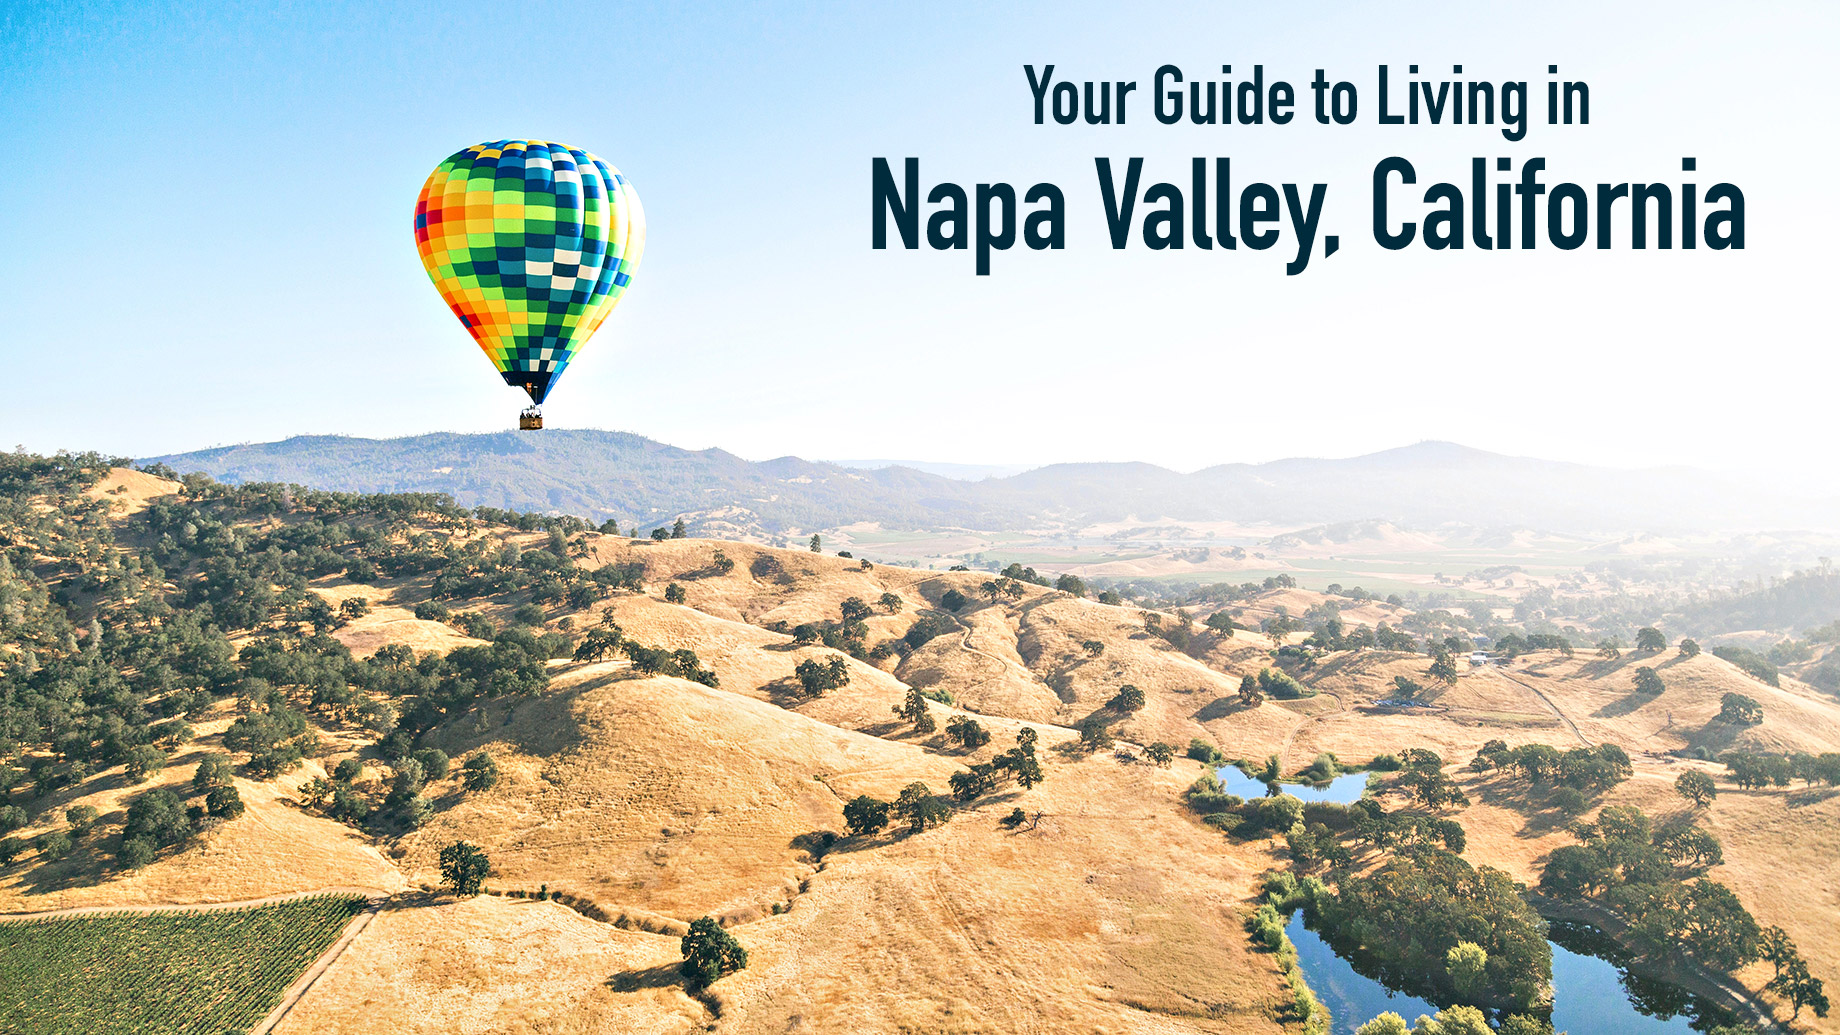 Your Guide to Living in Napa Valley, California